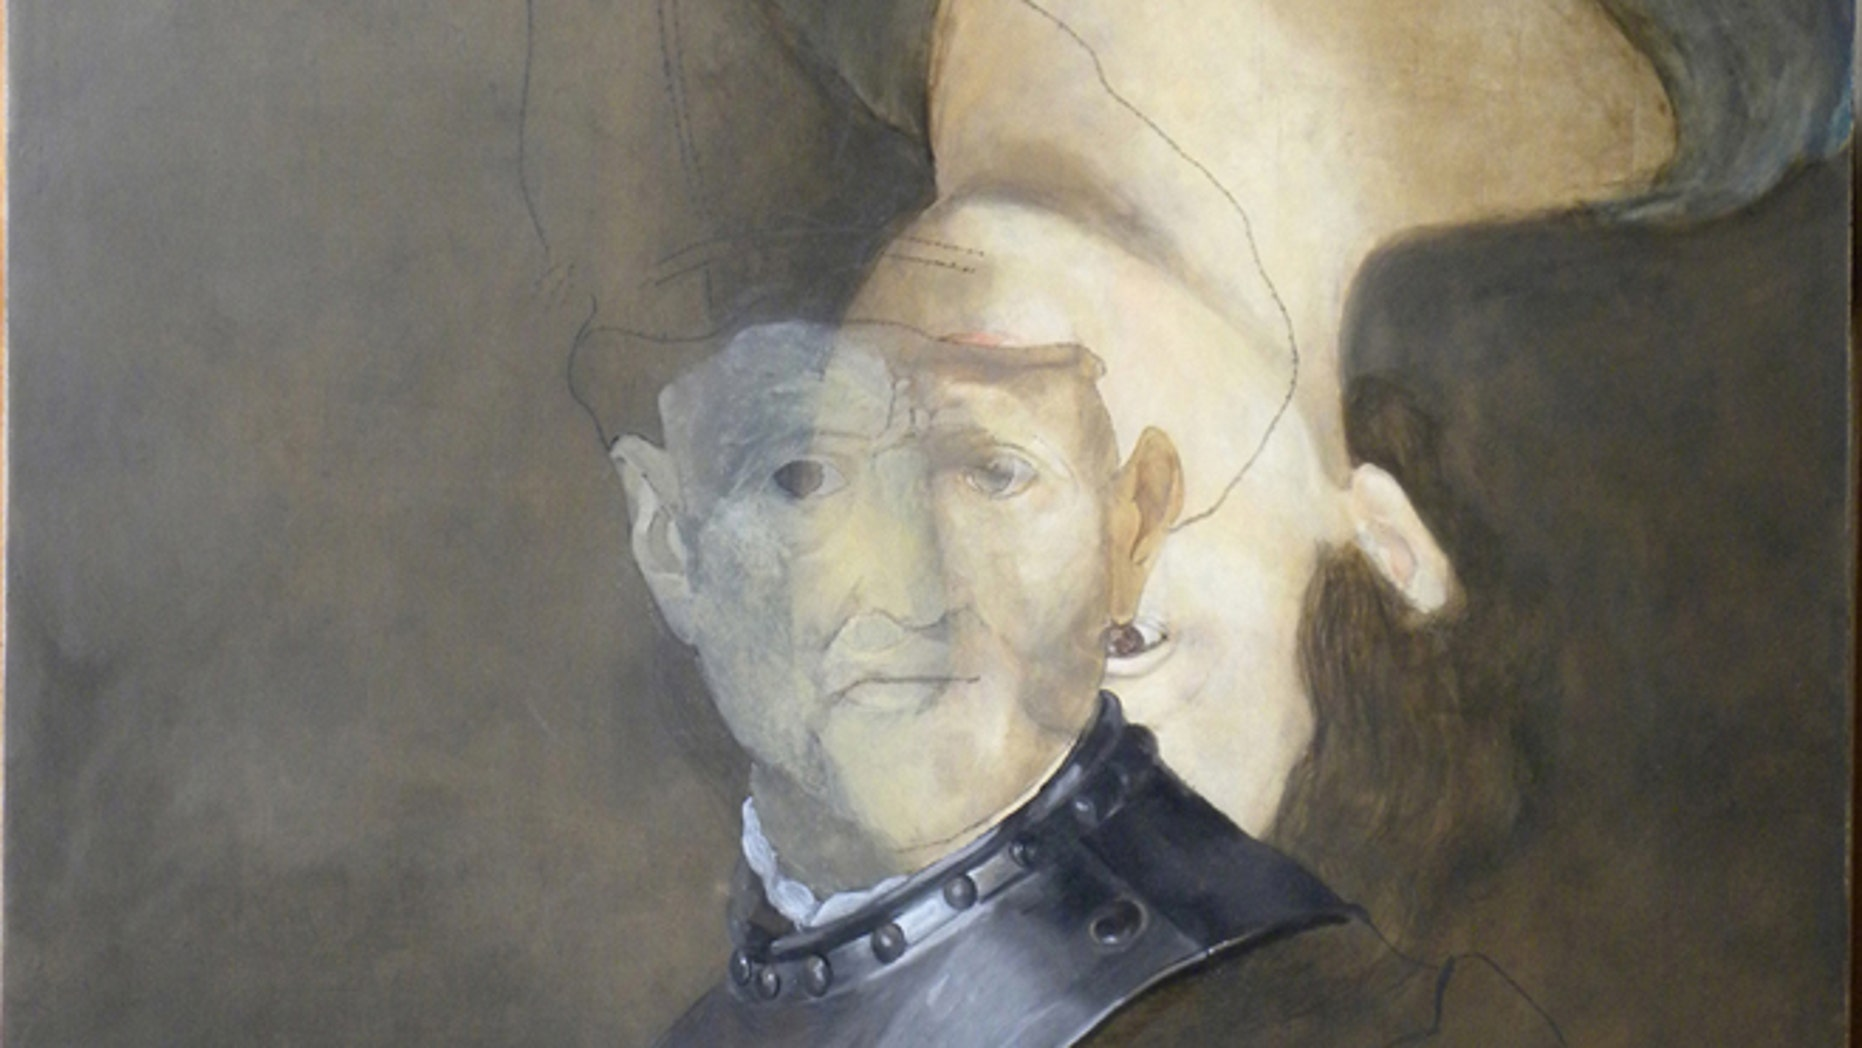 """Half-finished mock-up of Rembrandt's """"Old Man in Military Costume,"""" with a portrait painted underneath the final work."""